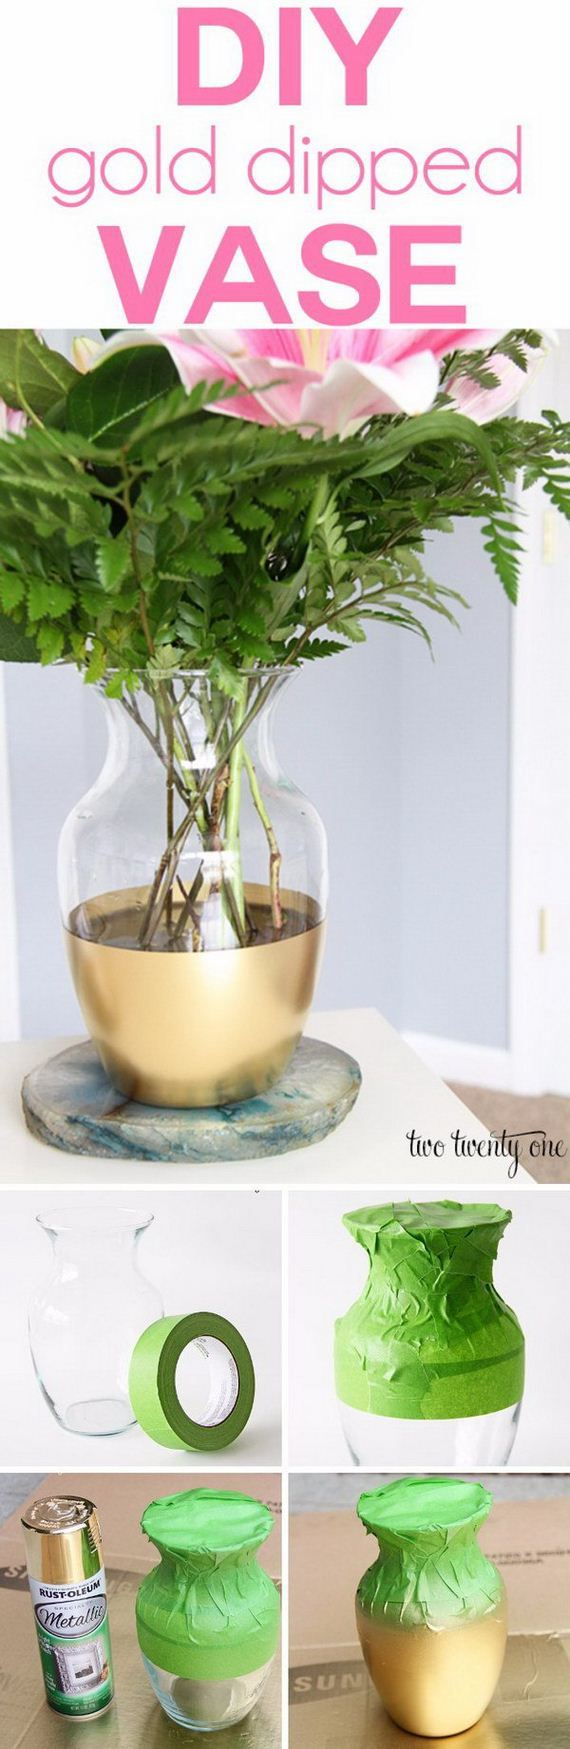 How To DIY Tutorial For Gold-Dipped Vase Wedding Centerpieces forecasting